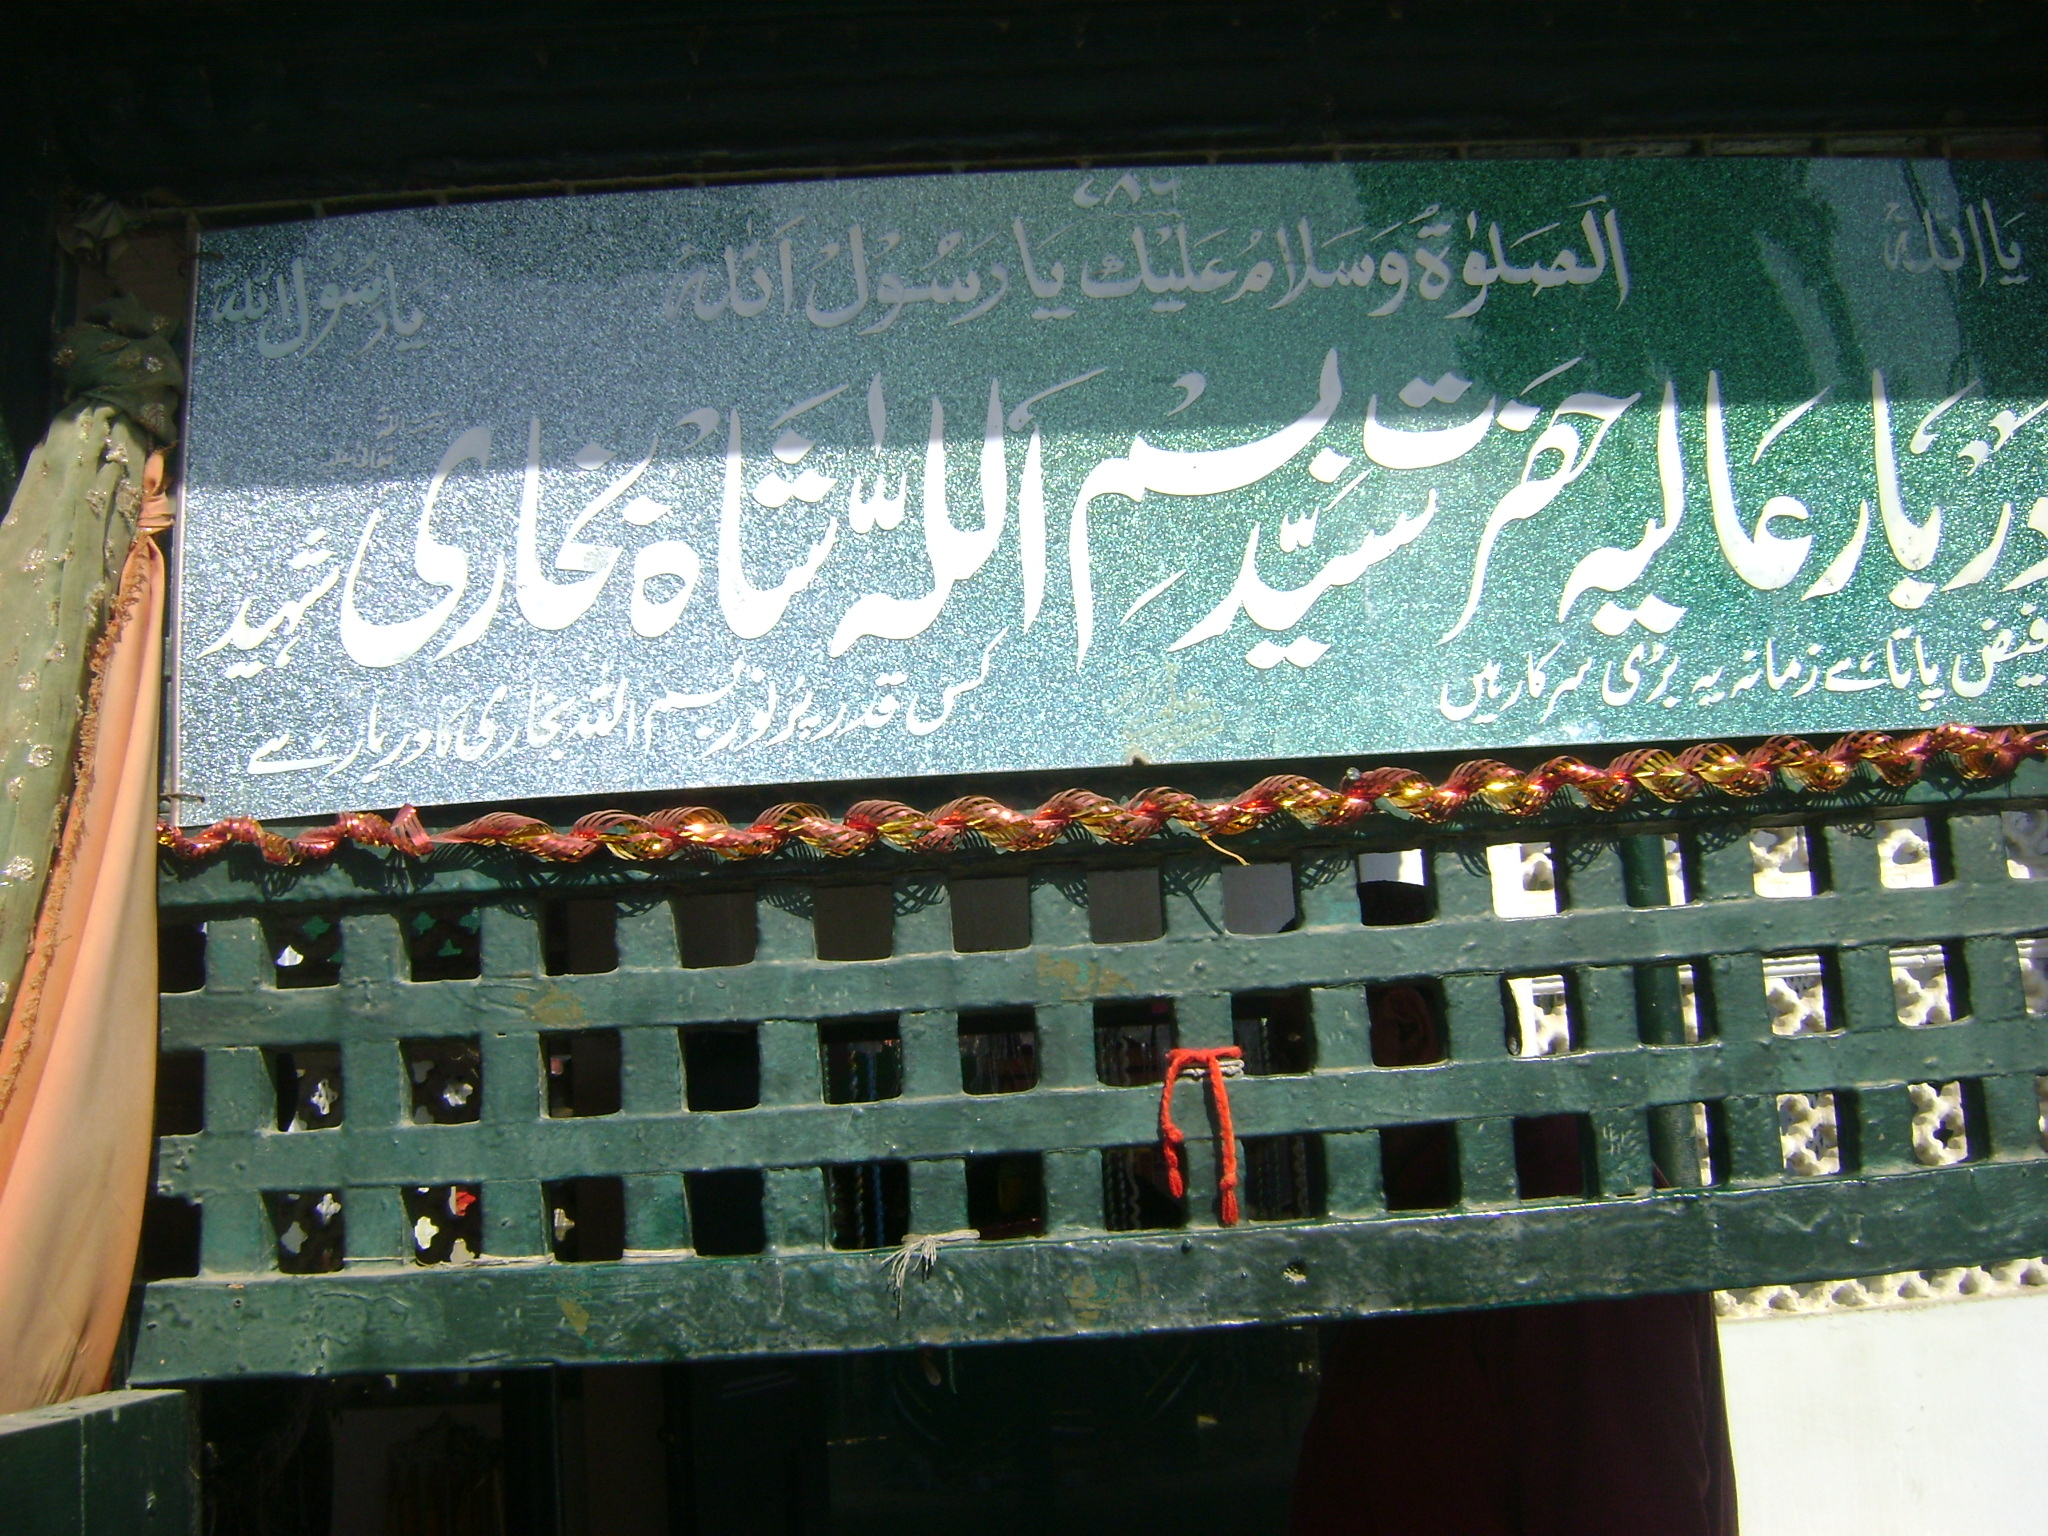 Final resting place of martyred Pir Pagaro remains a mystery- Shrine of Pir Bismillah shah - Sindh Courier-1